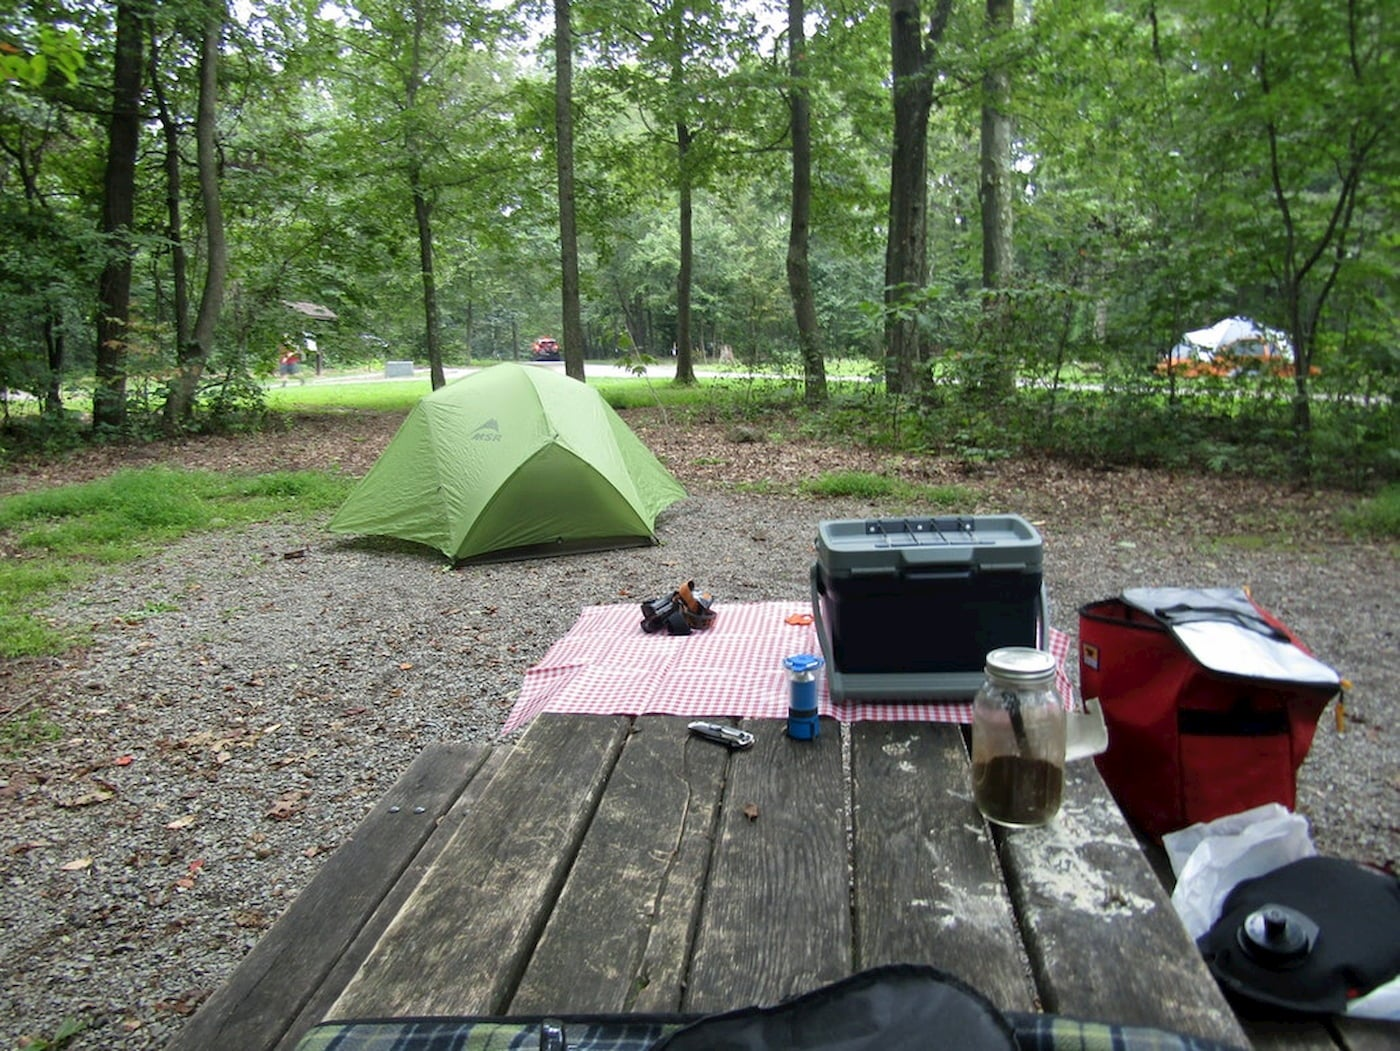 Campsite with picnic table and tent in forested area.